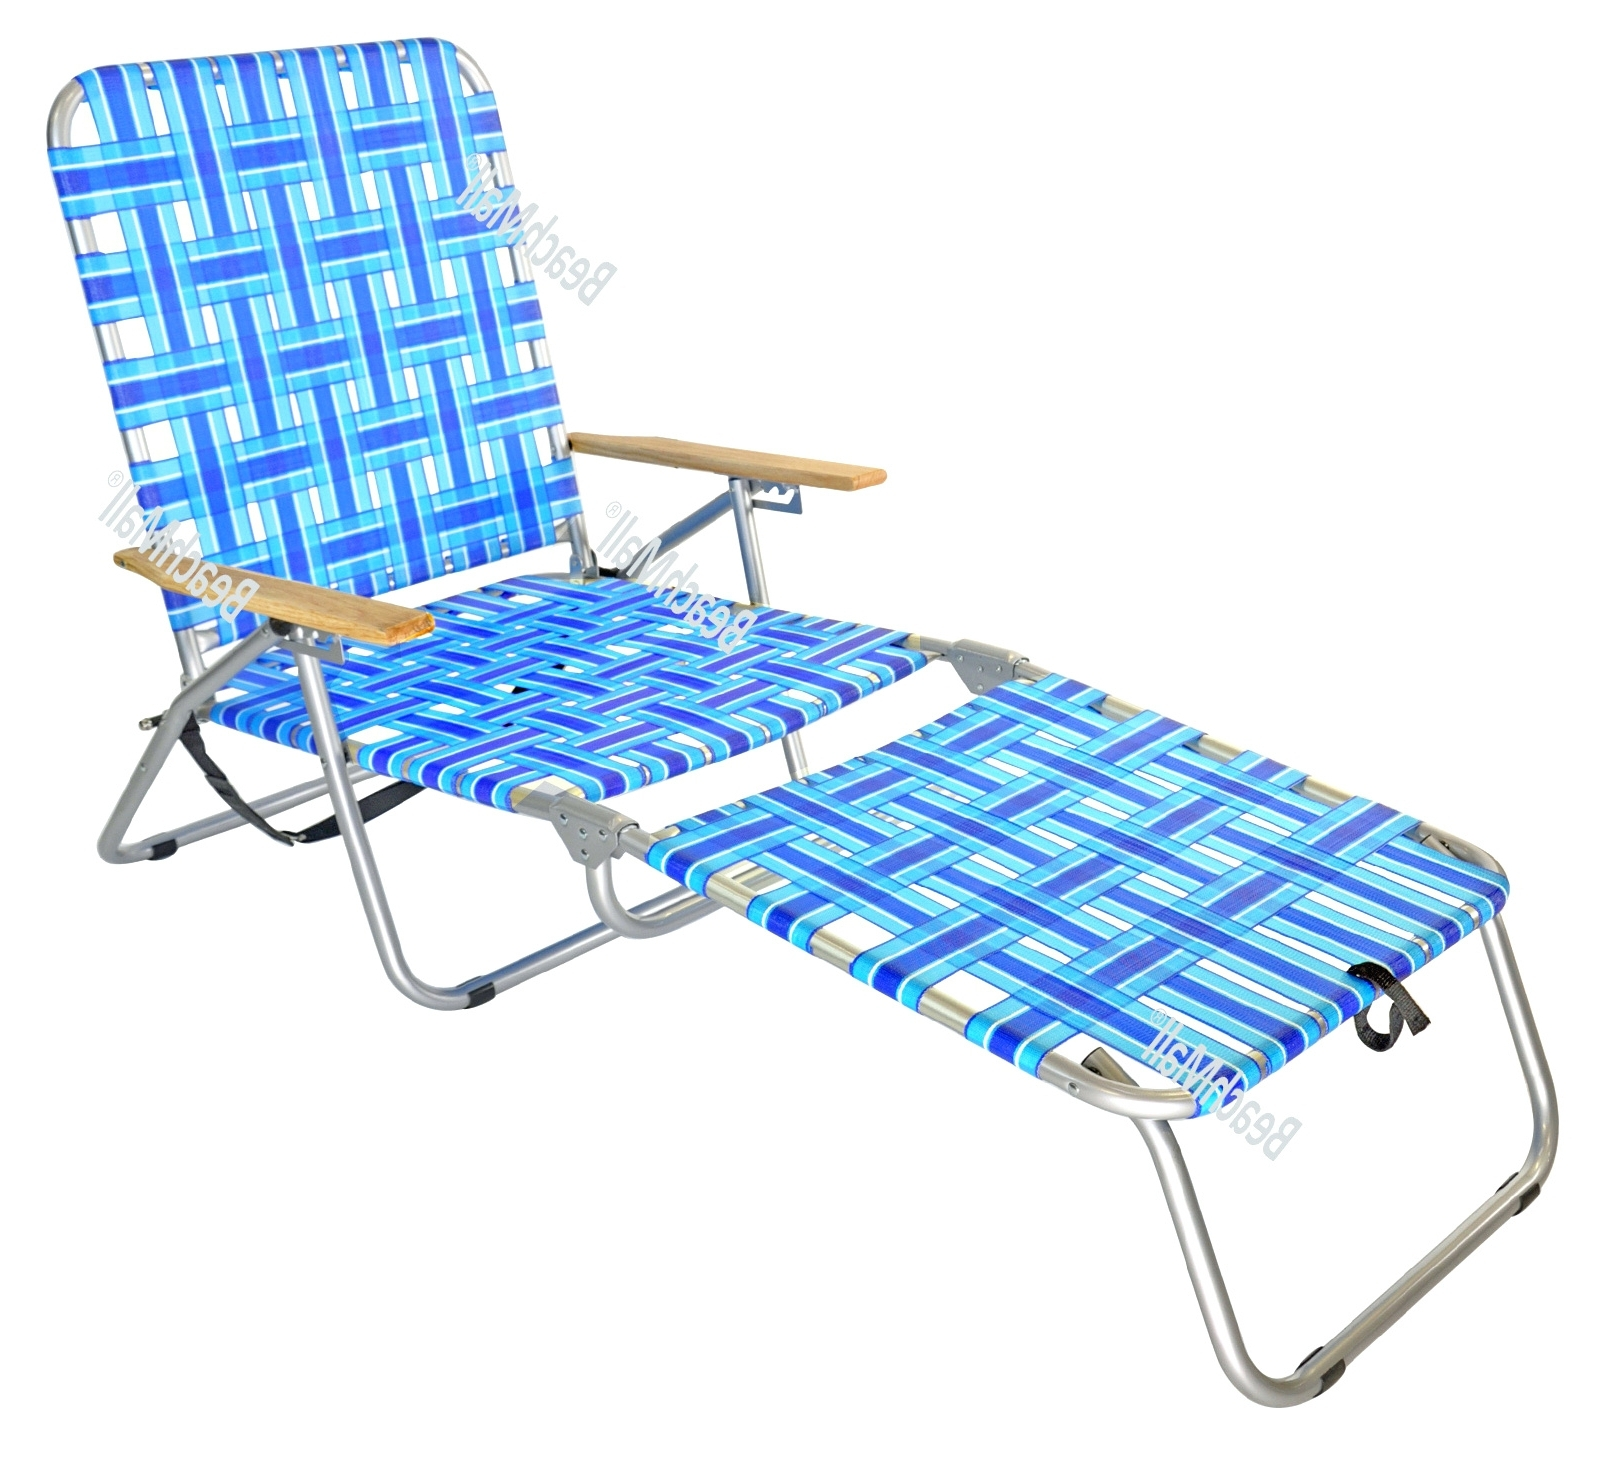 Fashionable Aluminum Folding Lawn Lounge Chair • Lounge Chairs Ideas In Chaise Lawn Chairs (View 7 of 15)